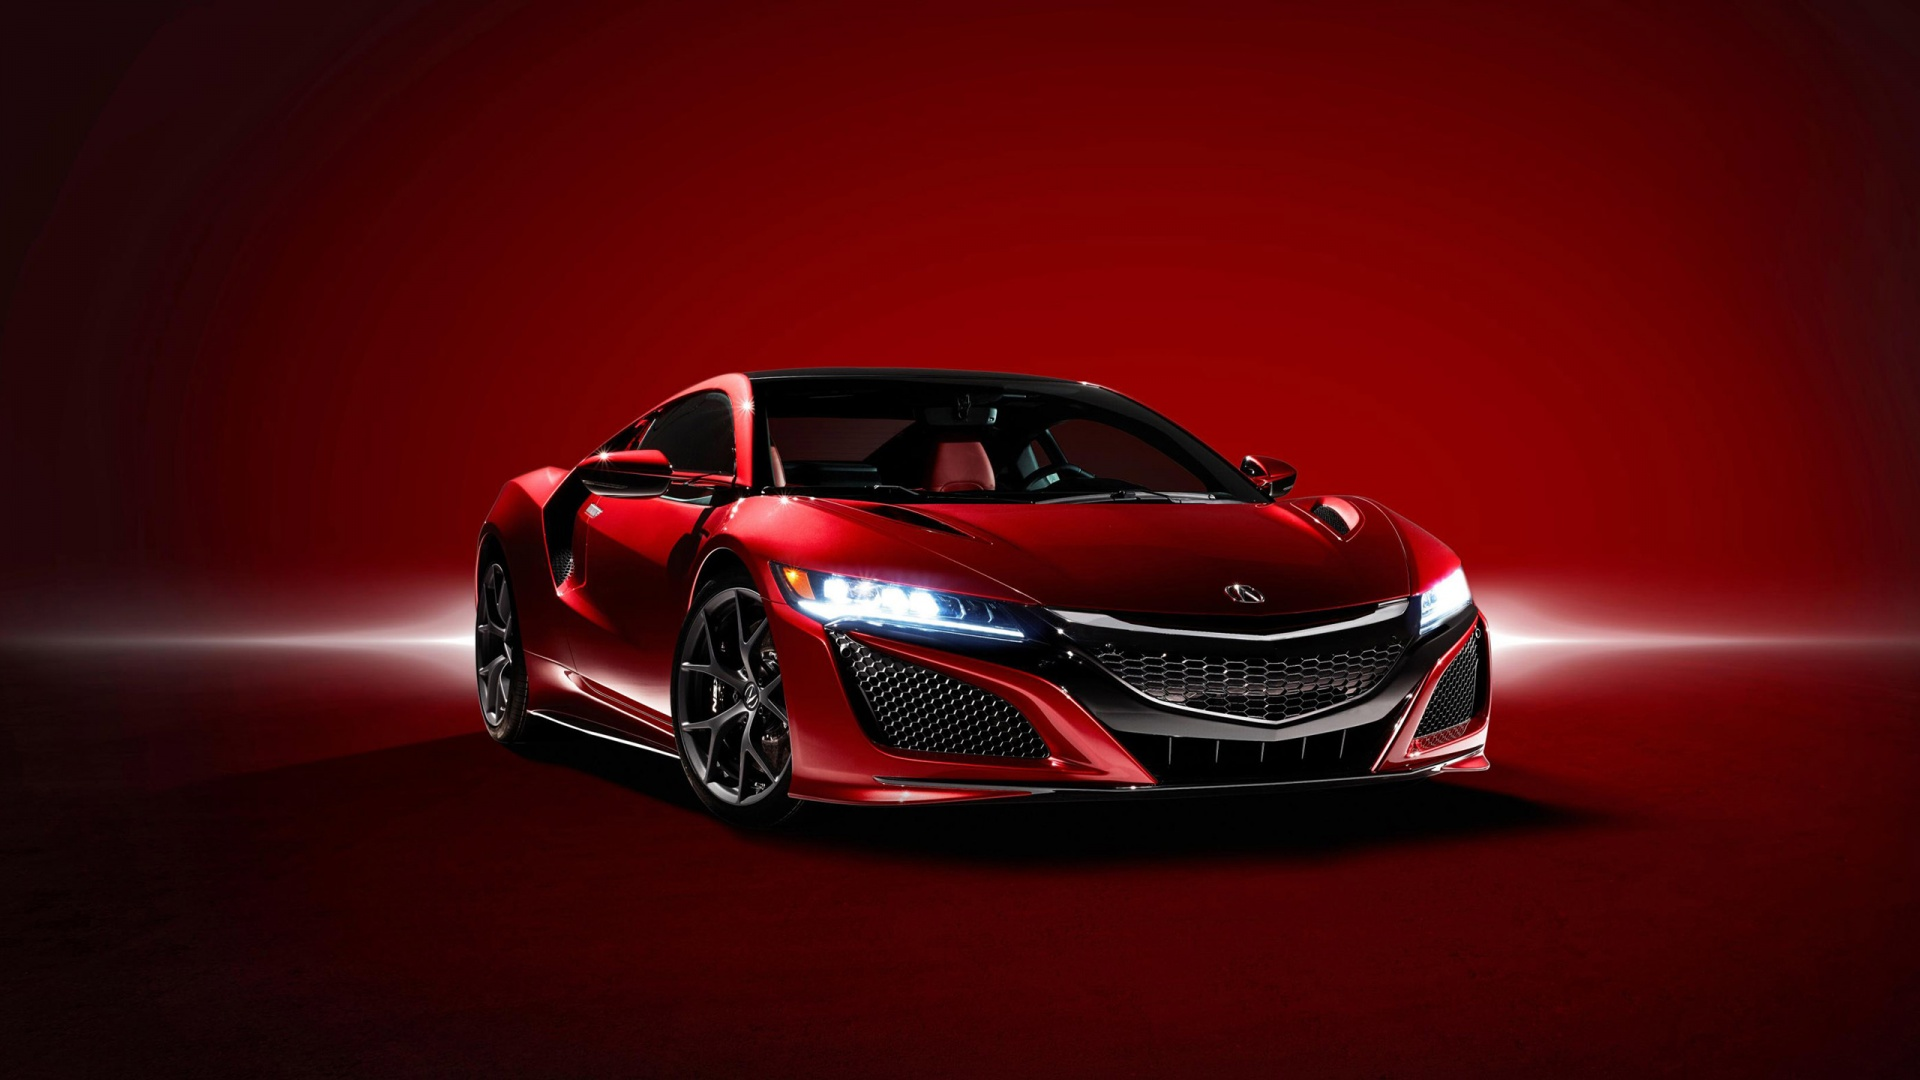 Supercars Hd Wallpapers Download Image Gallery Hcpr